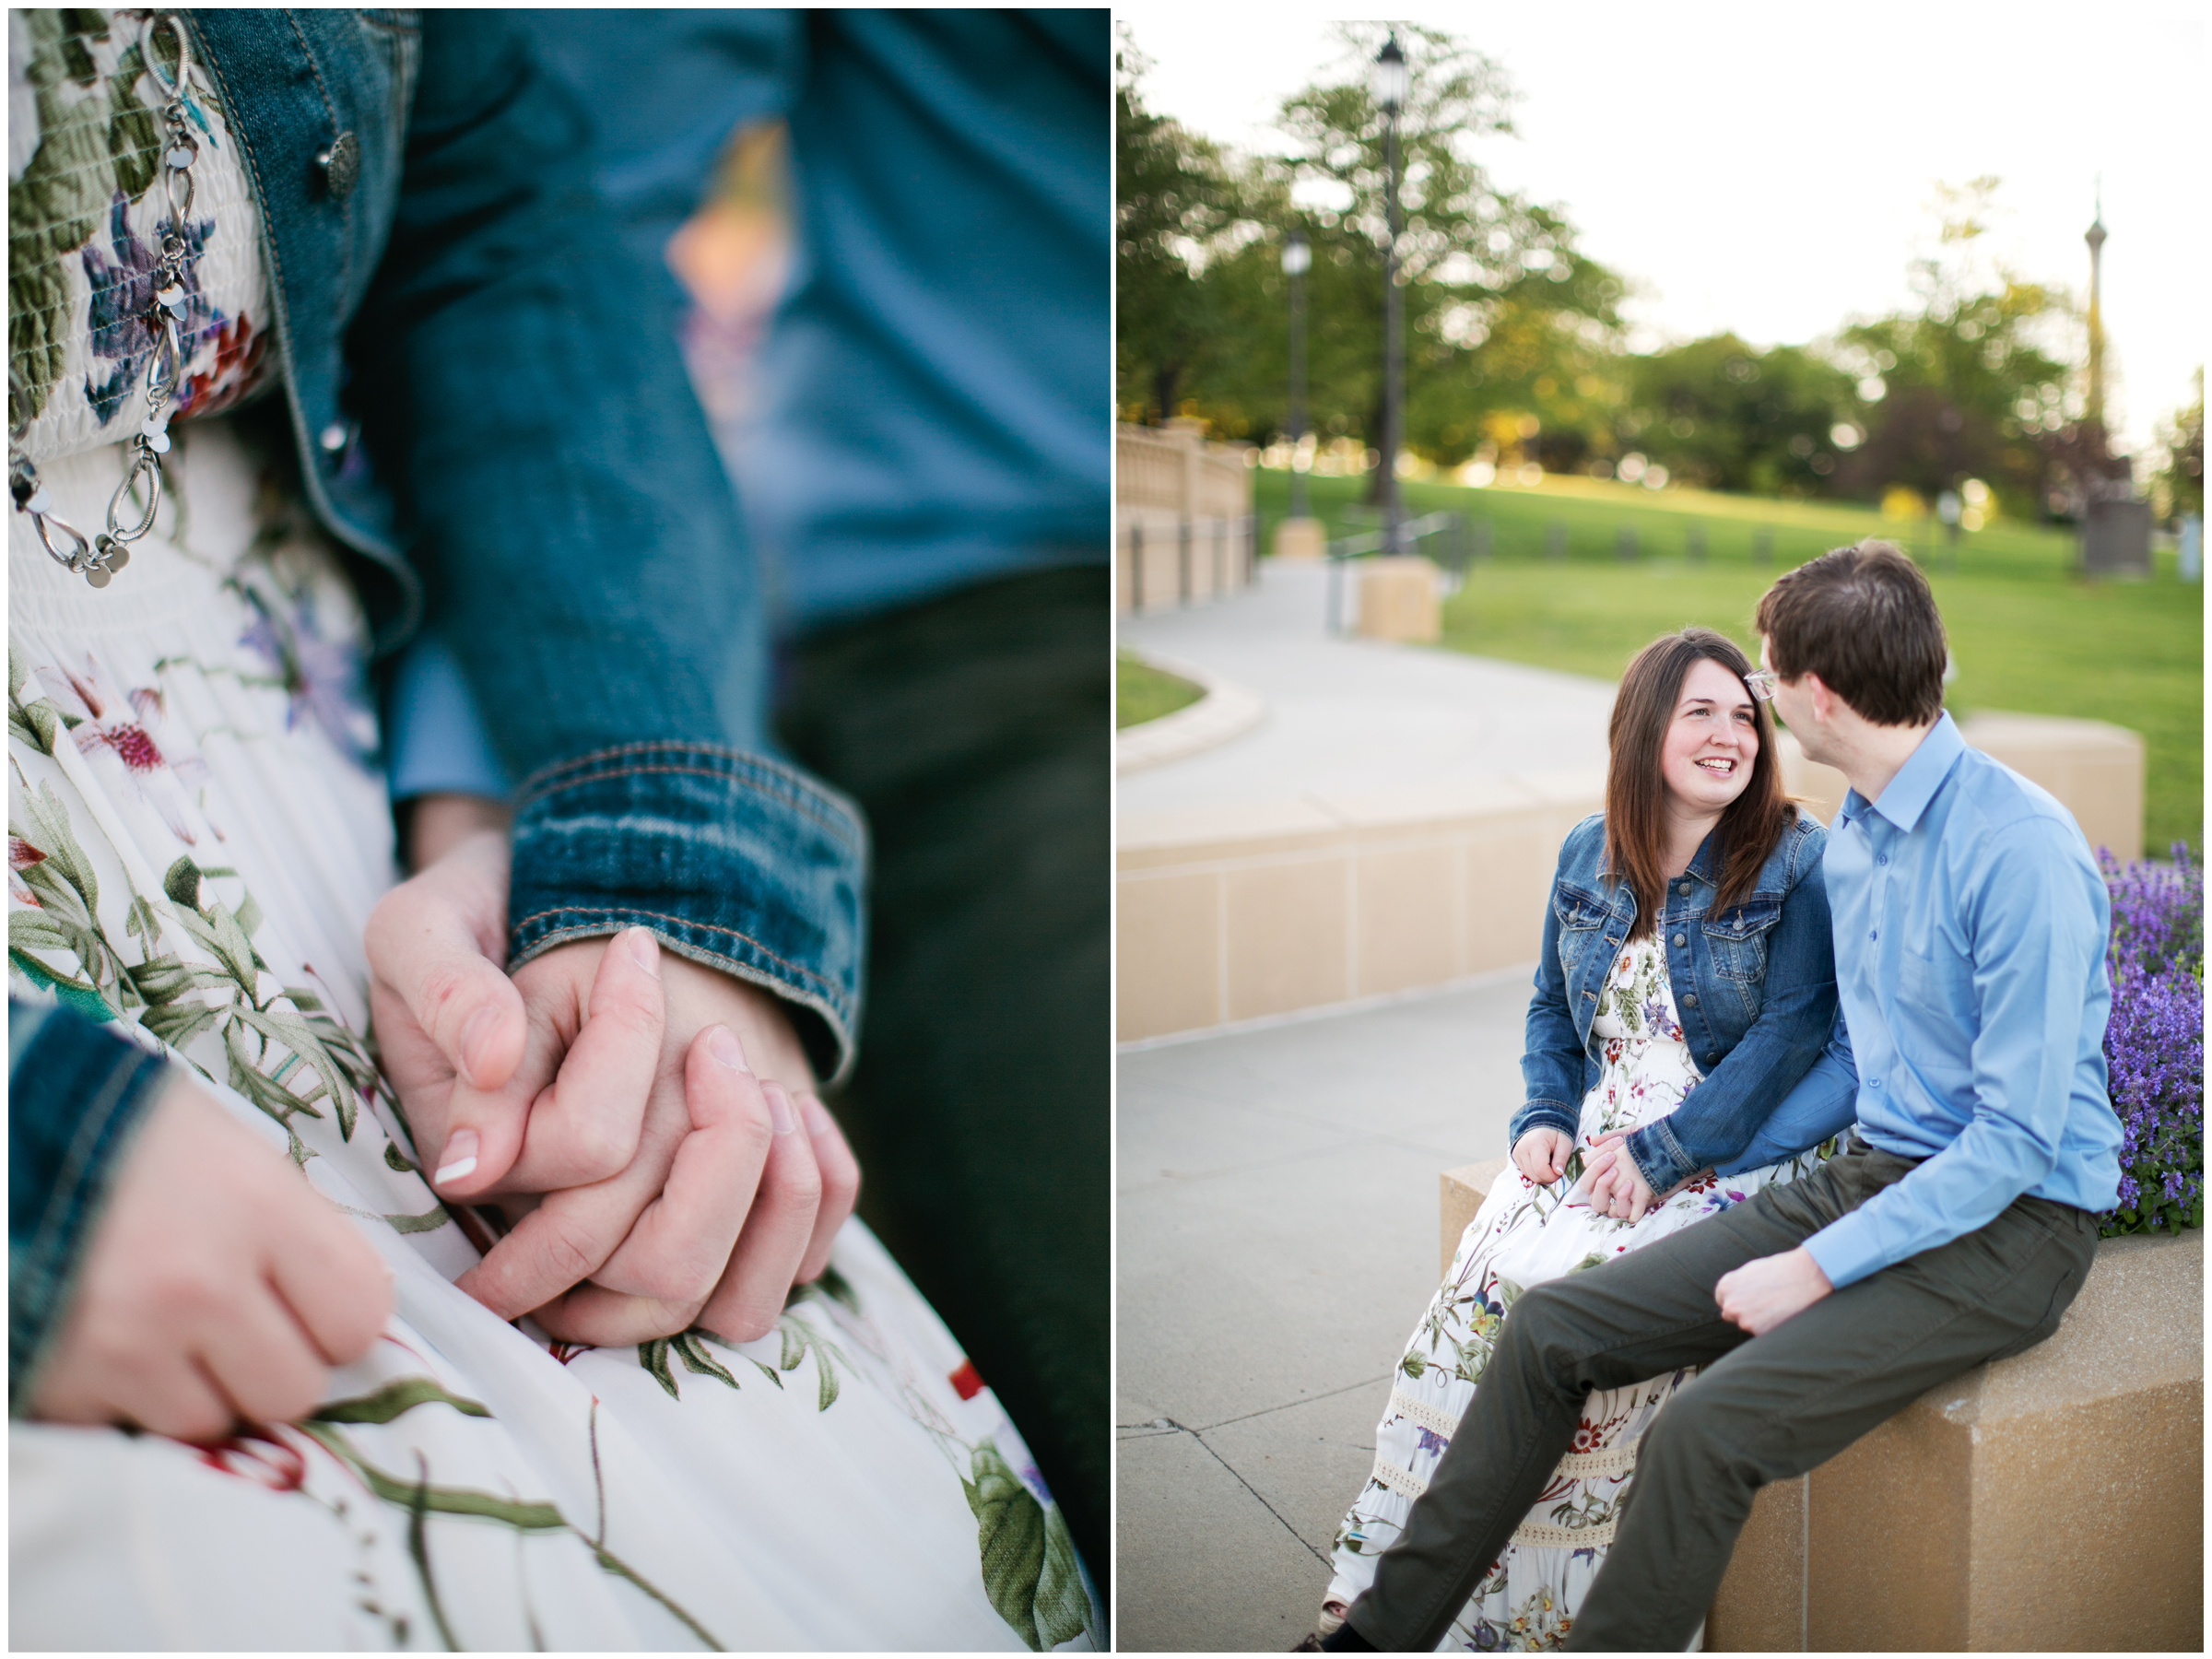 des moines engagement photographer.jpg